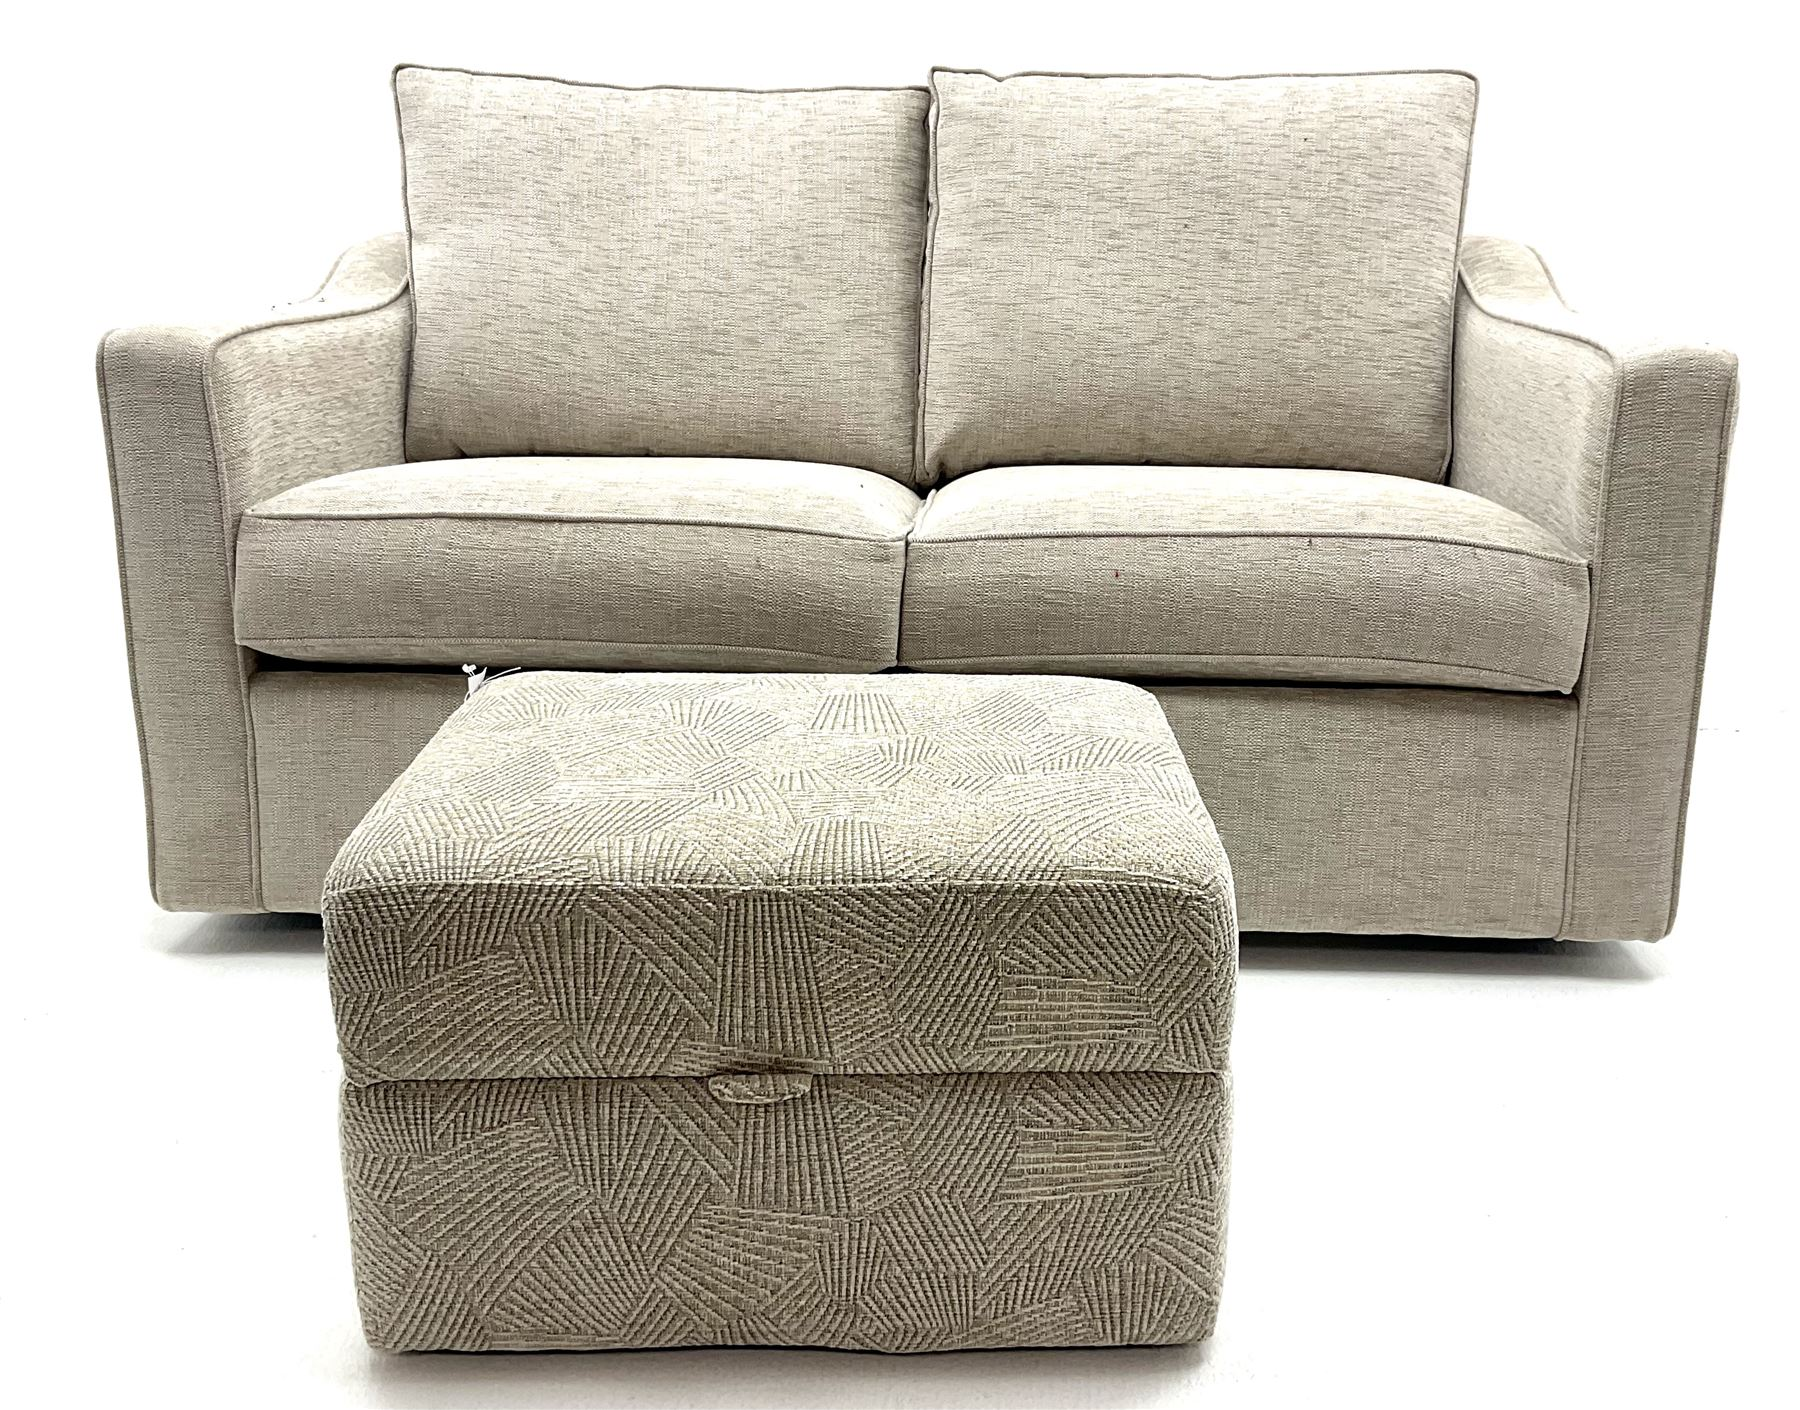 Two seat metal action sofa bed upholstered in a neutral fabric (W157cm) with storage stool (2)